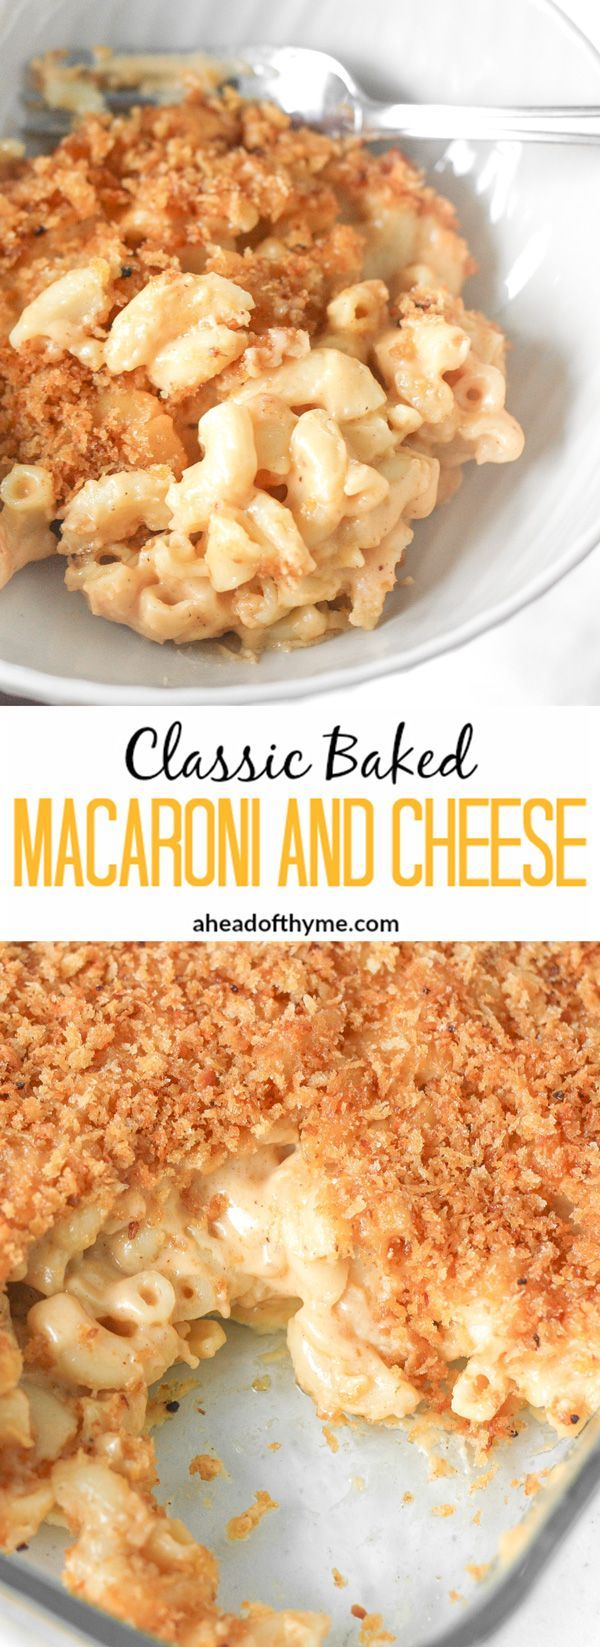 Classic Baked Macaroni and Cheese: It's officially fall so bring on the ultimate…